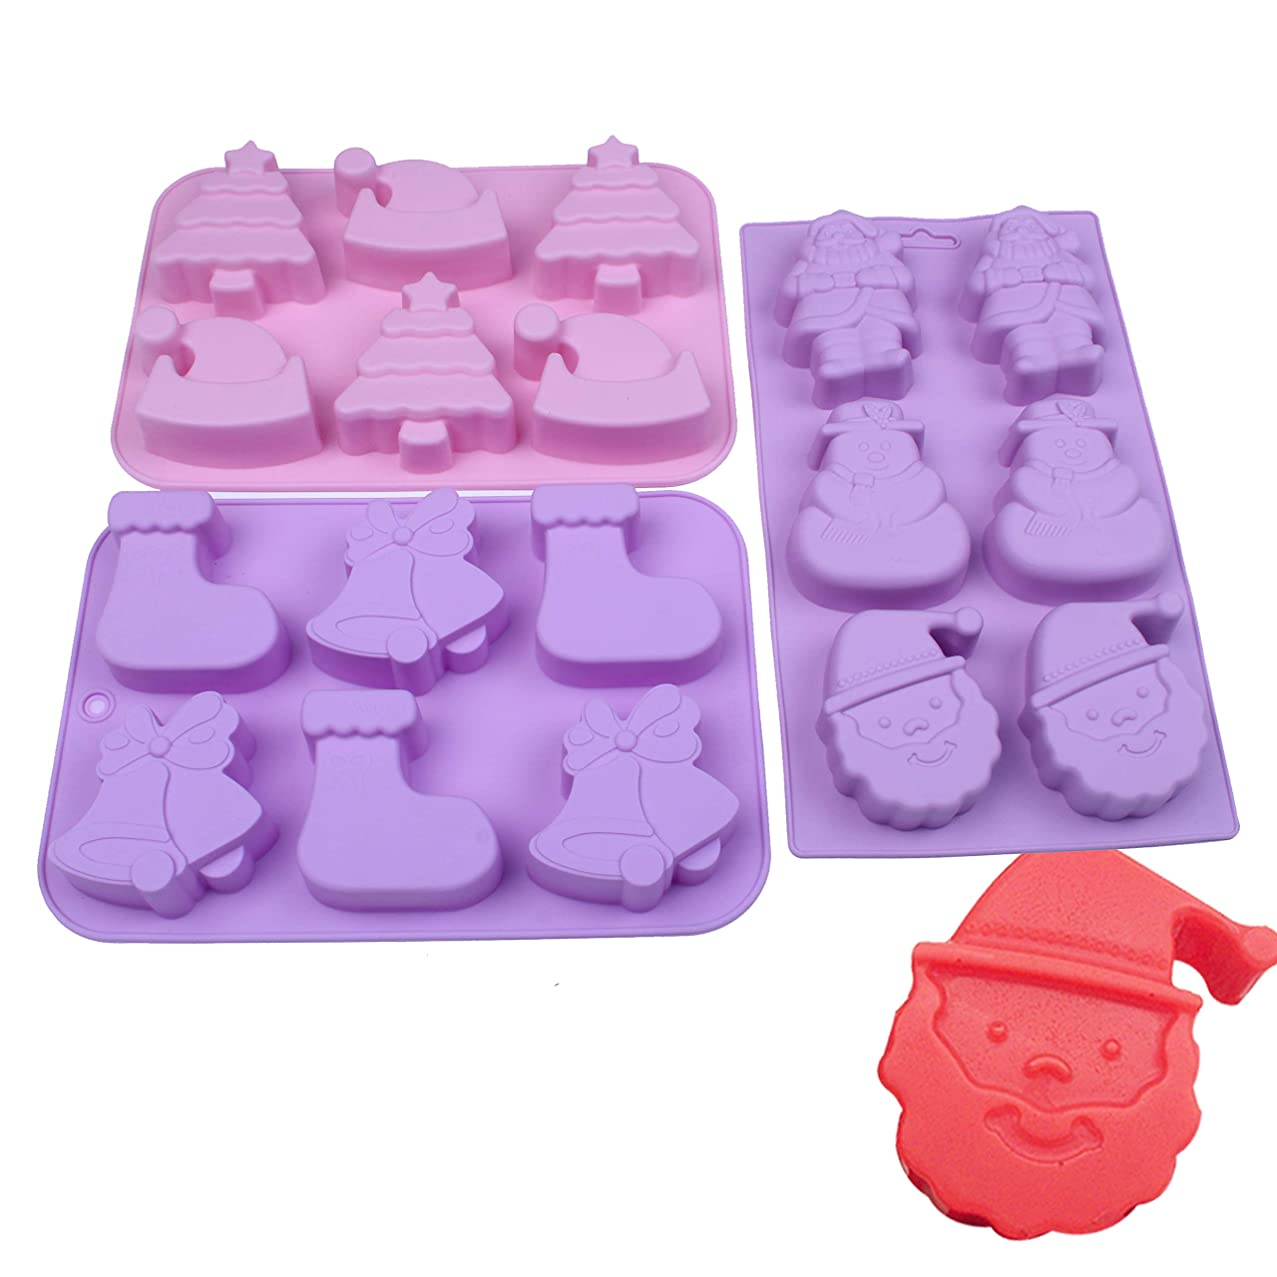 BAKER DEPOT Silicone Molds For Cake Candy Chocolate Jello Pudding Christmas Series Tree Snowman Hat Bell Stocking Shape Etc Silicone Handmade Soap Mold baking tool DIY Candle Mould, set of 3